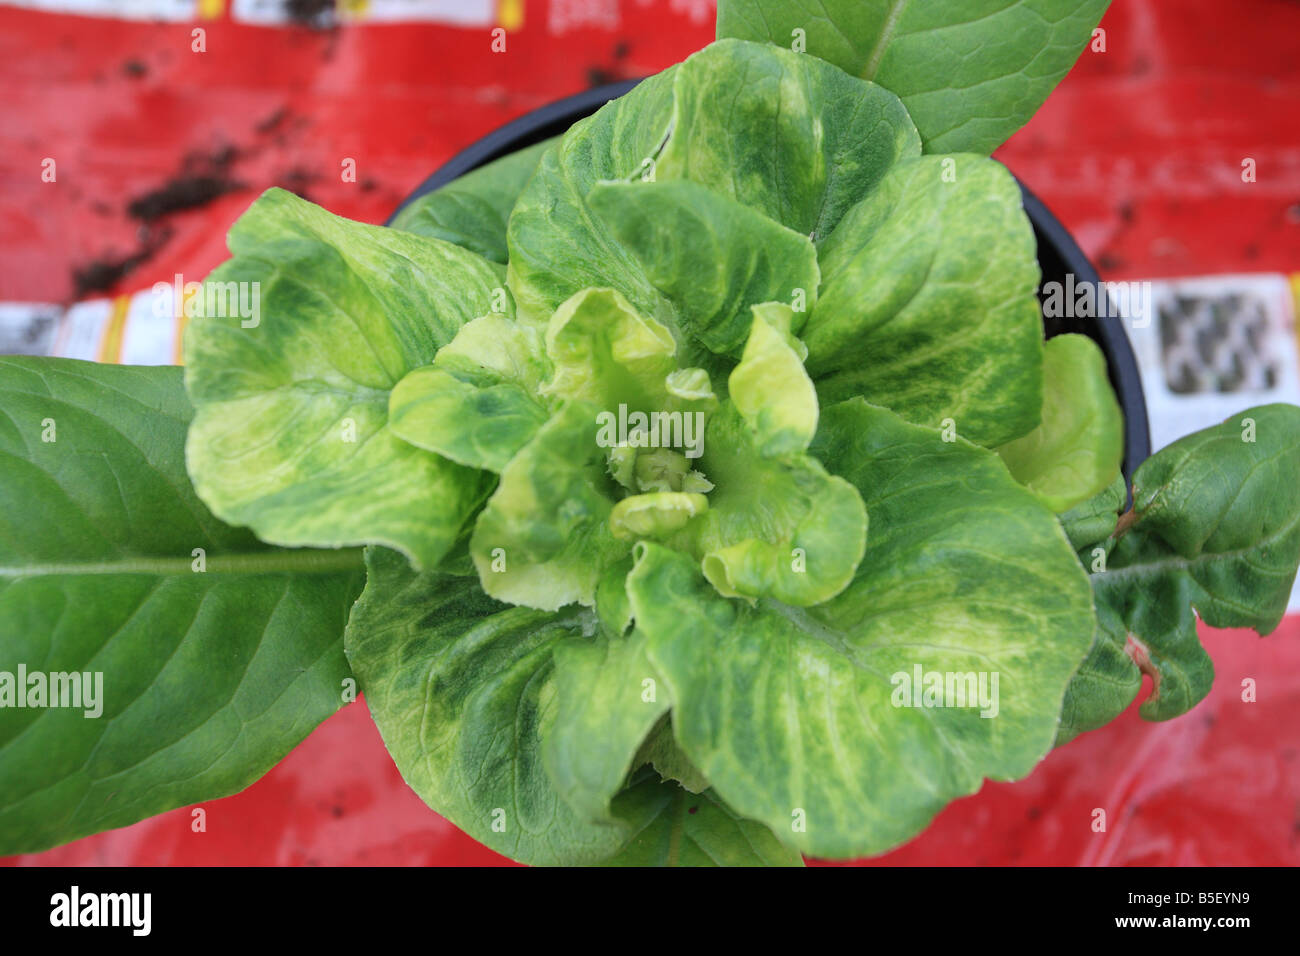 LETTUCE MOSAIC VIRUS INFECTED PLANT TOP VIEW - Stock Image